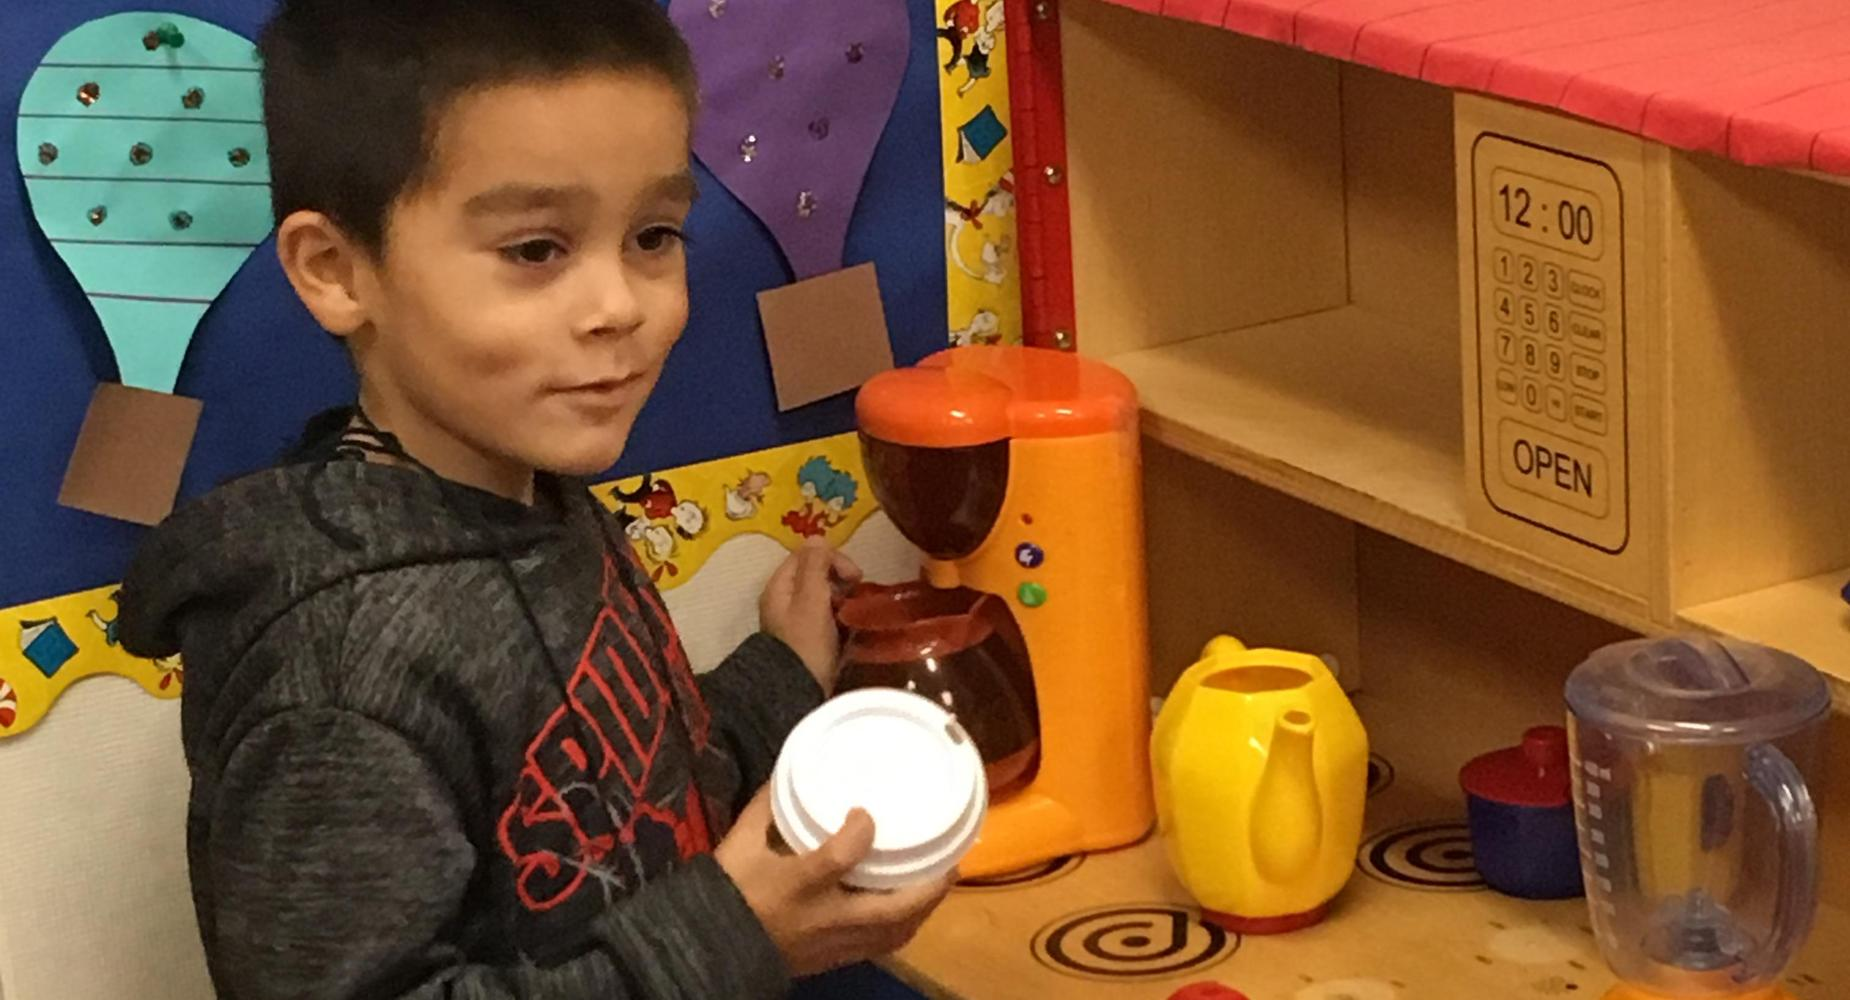 TK student making some coffee.